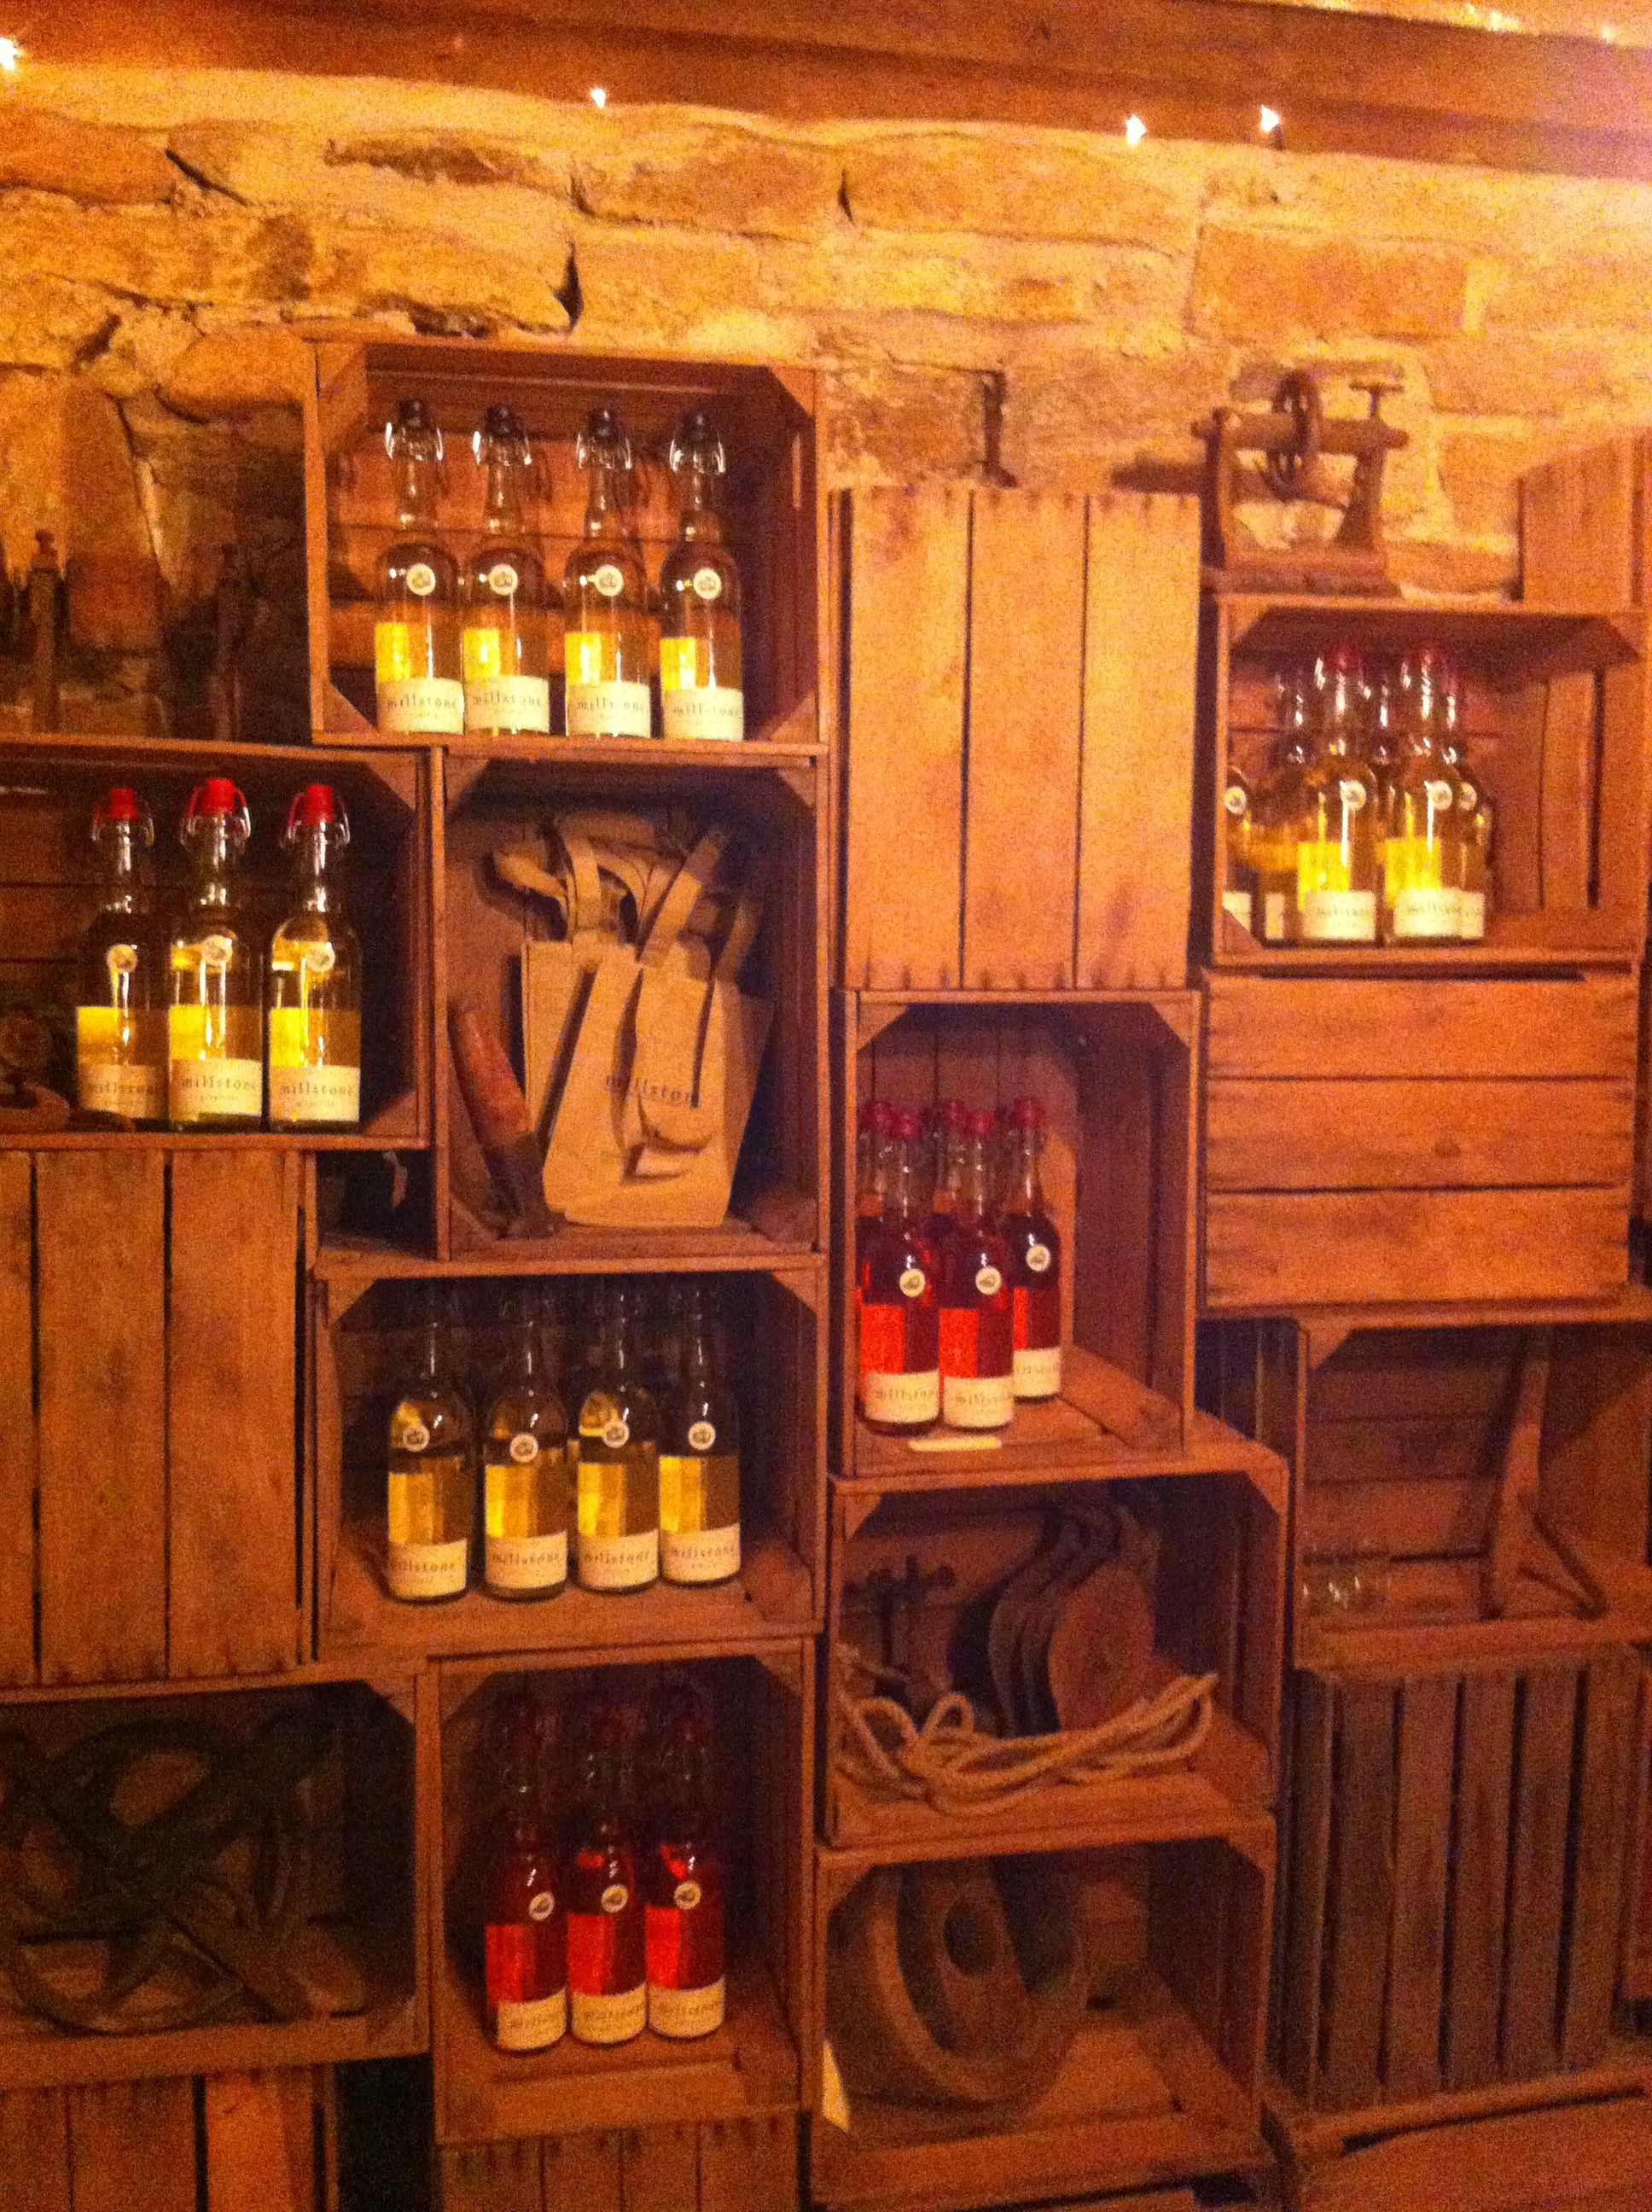 Bottles of Cider on the Wall